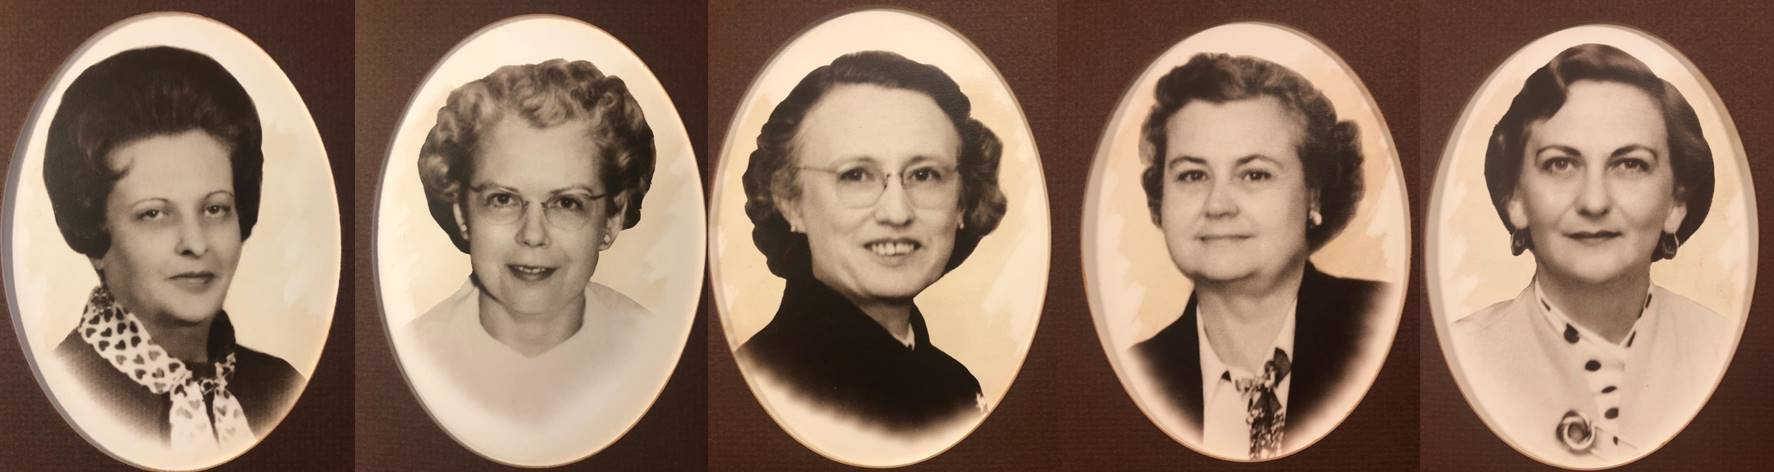 Photographs of NAWIC founders